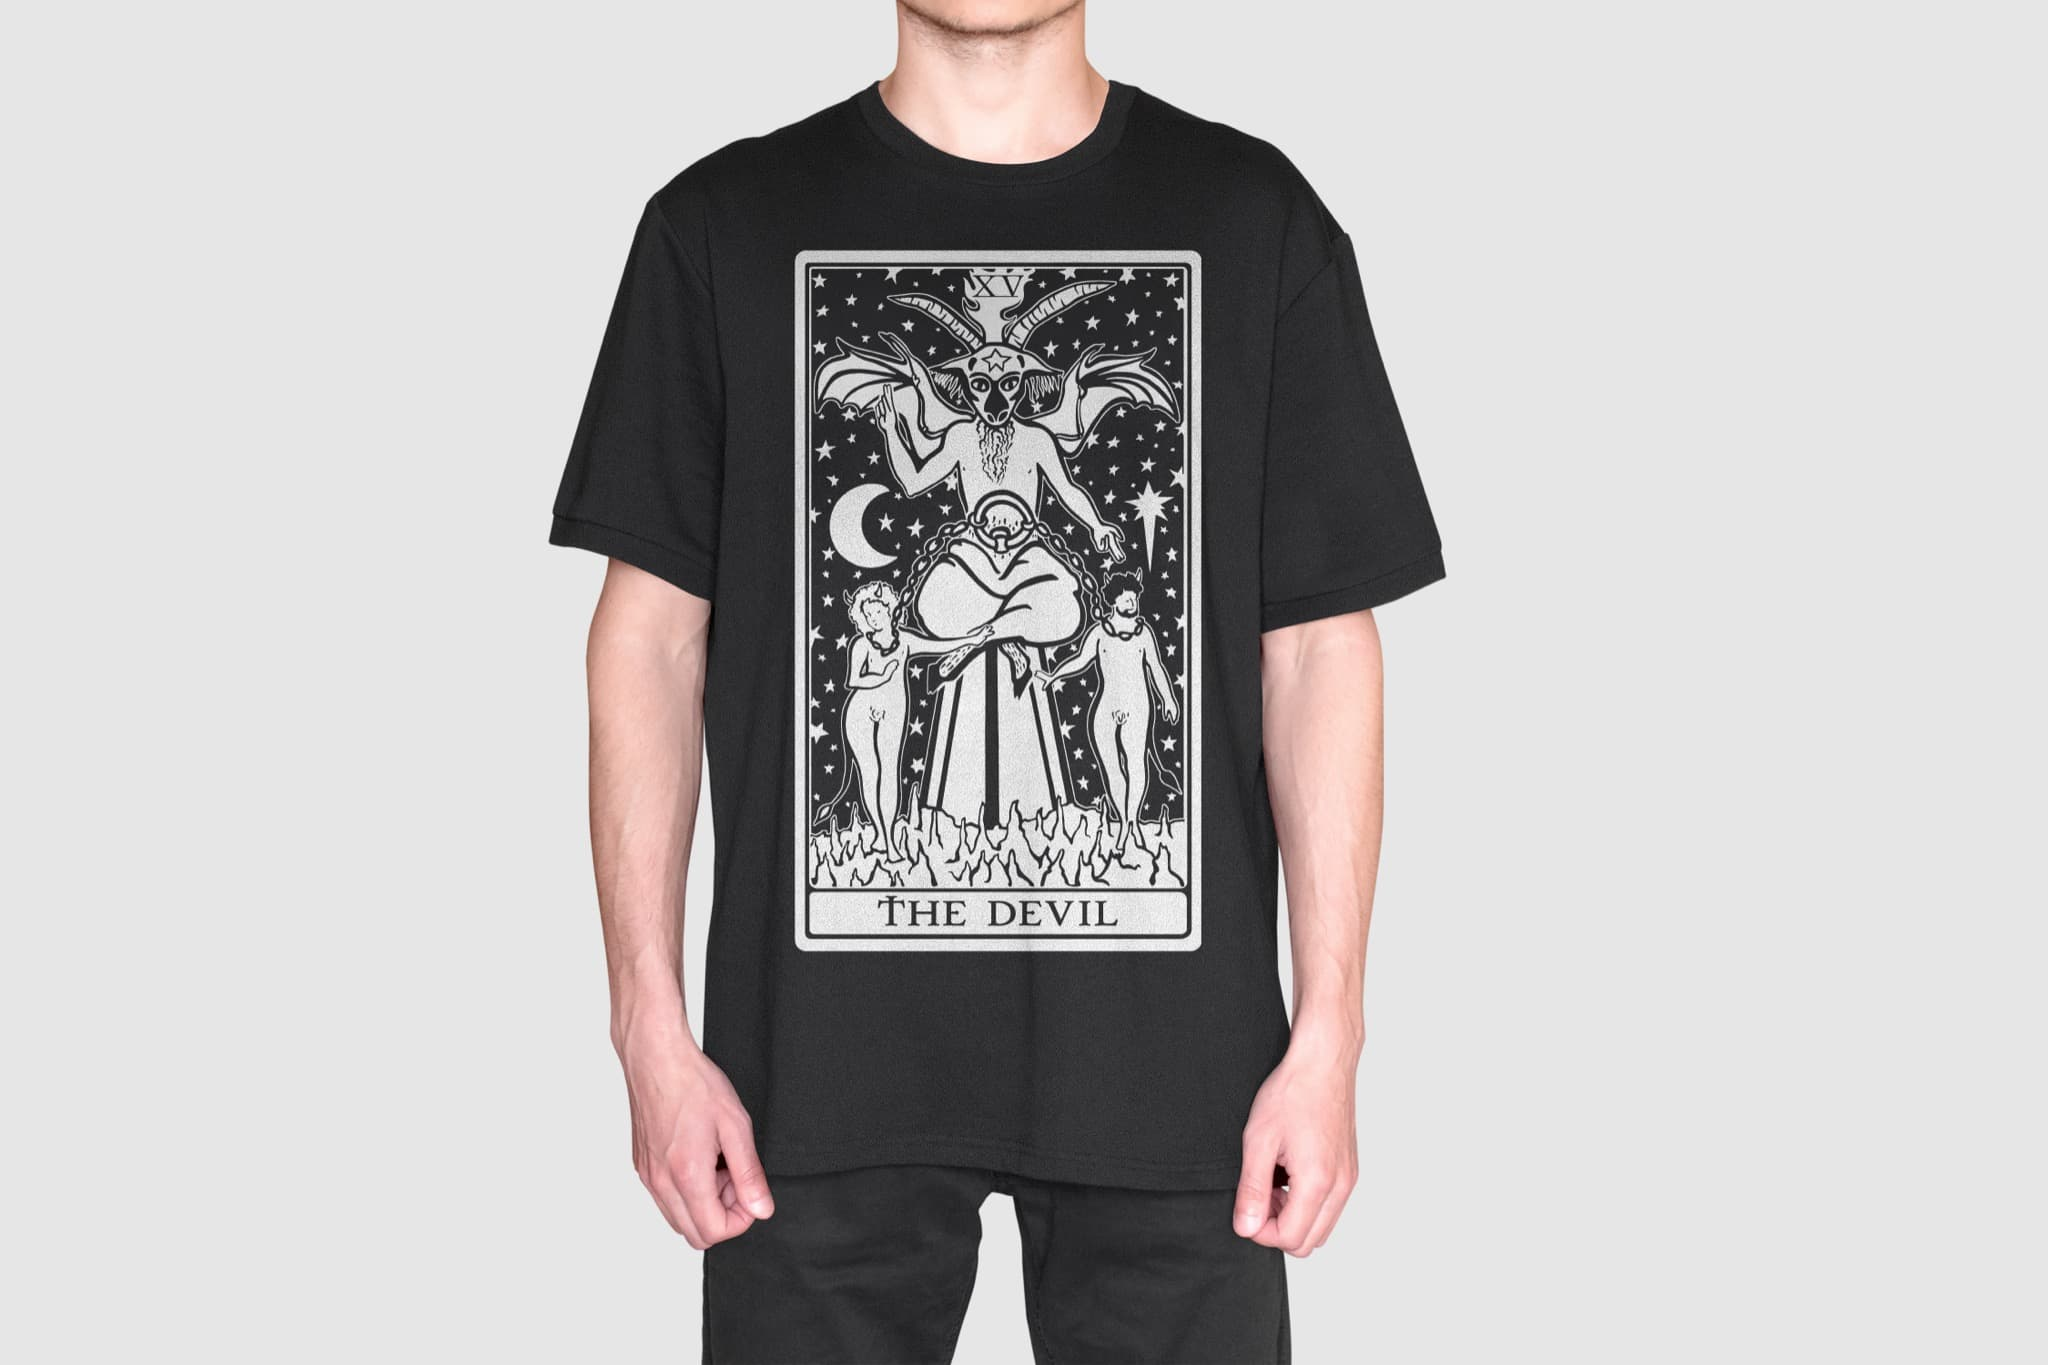 The Devil - Tarot Shirt